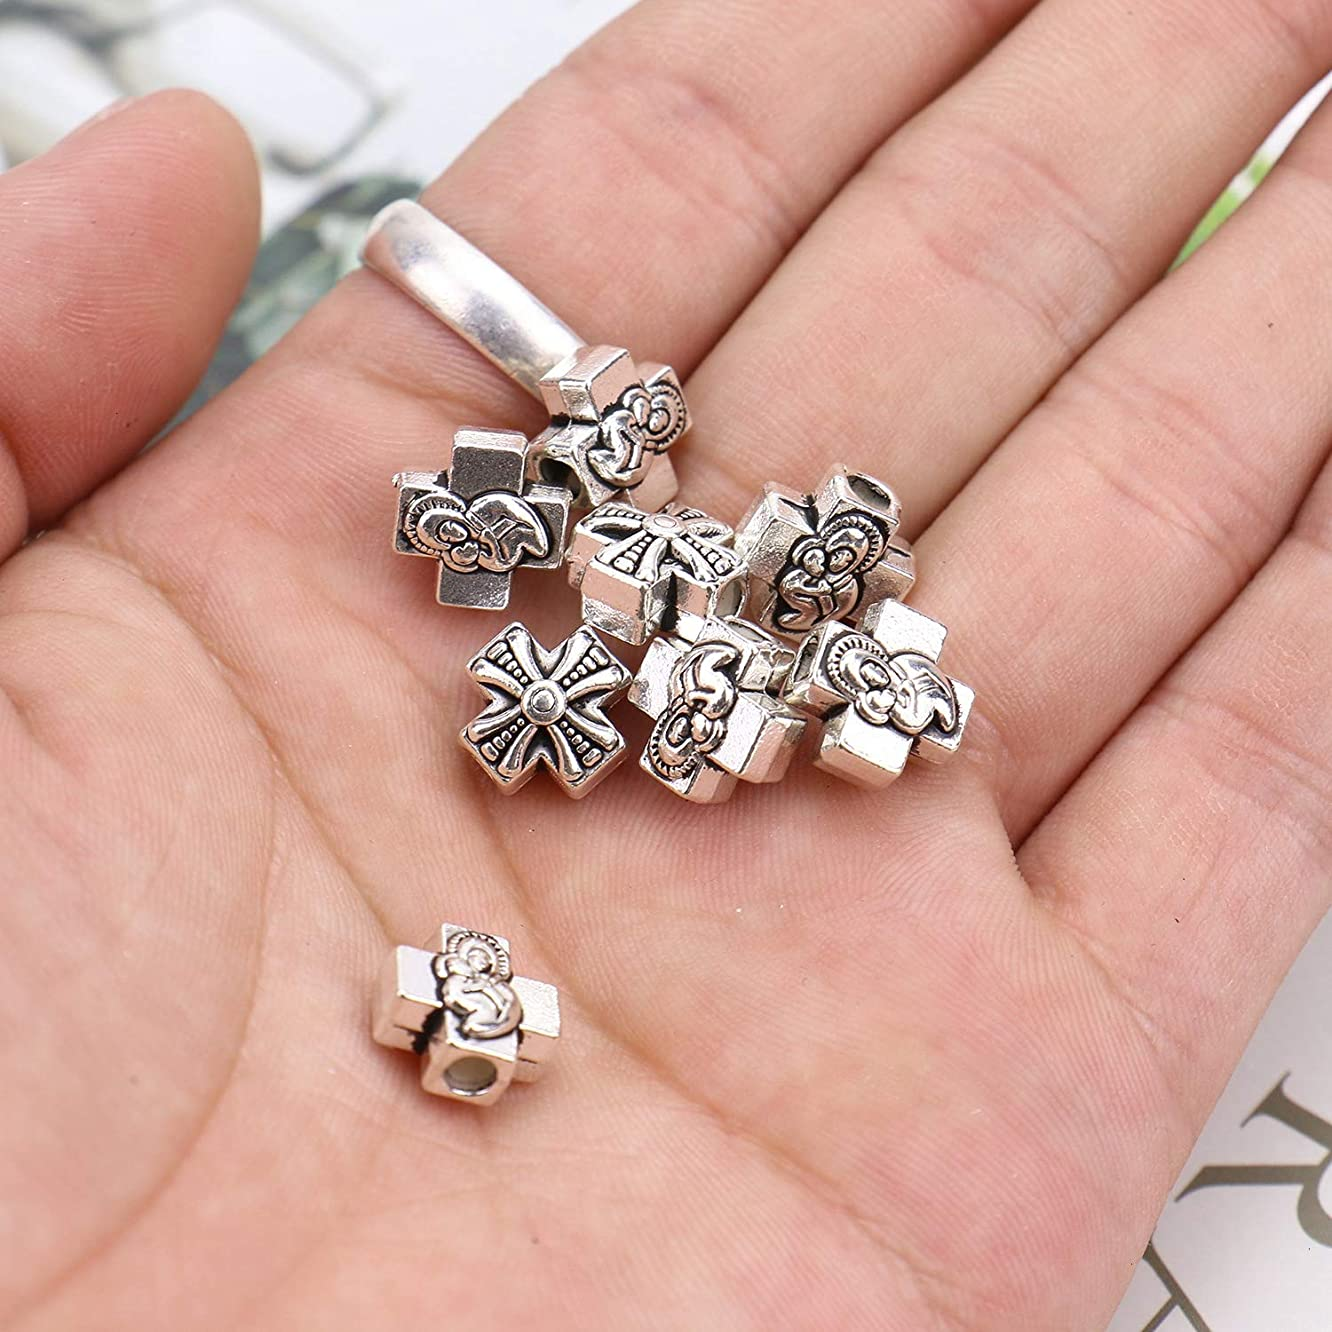 Monrocco 60 PCS Antique Silver Tone Cross Spacer Beads for Jewelry Making Necklace Pendants